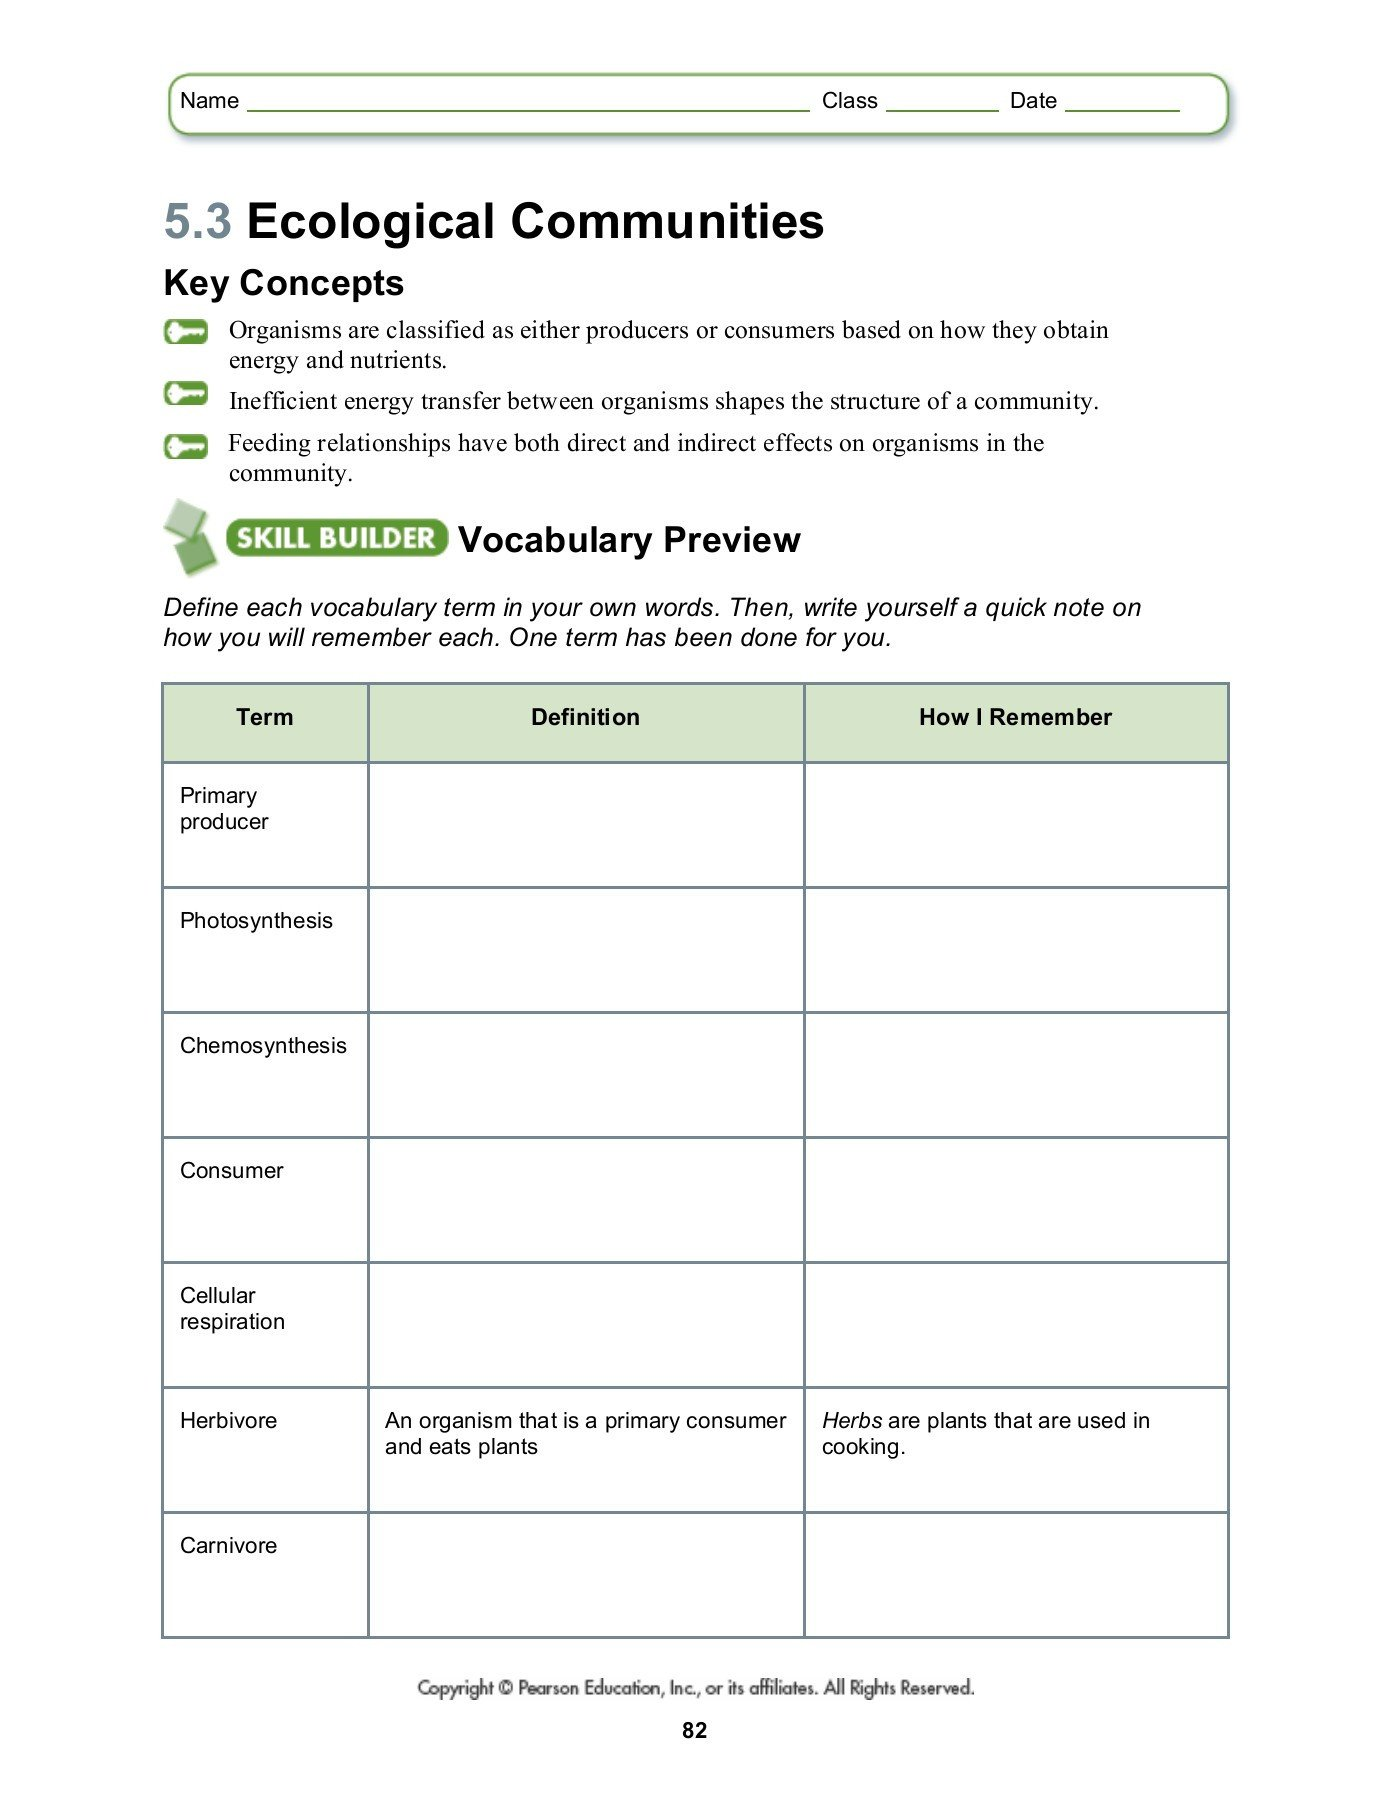 Ecosystem Worksheet Answer Key 5 3 Ecological Munities southgate Schools Pages 1 4